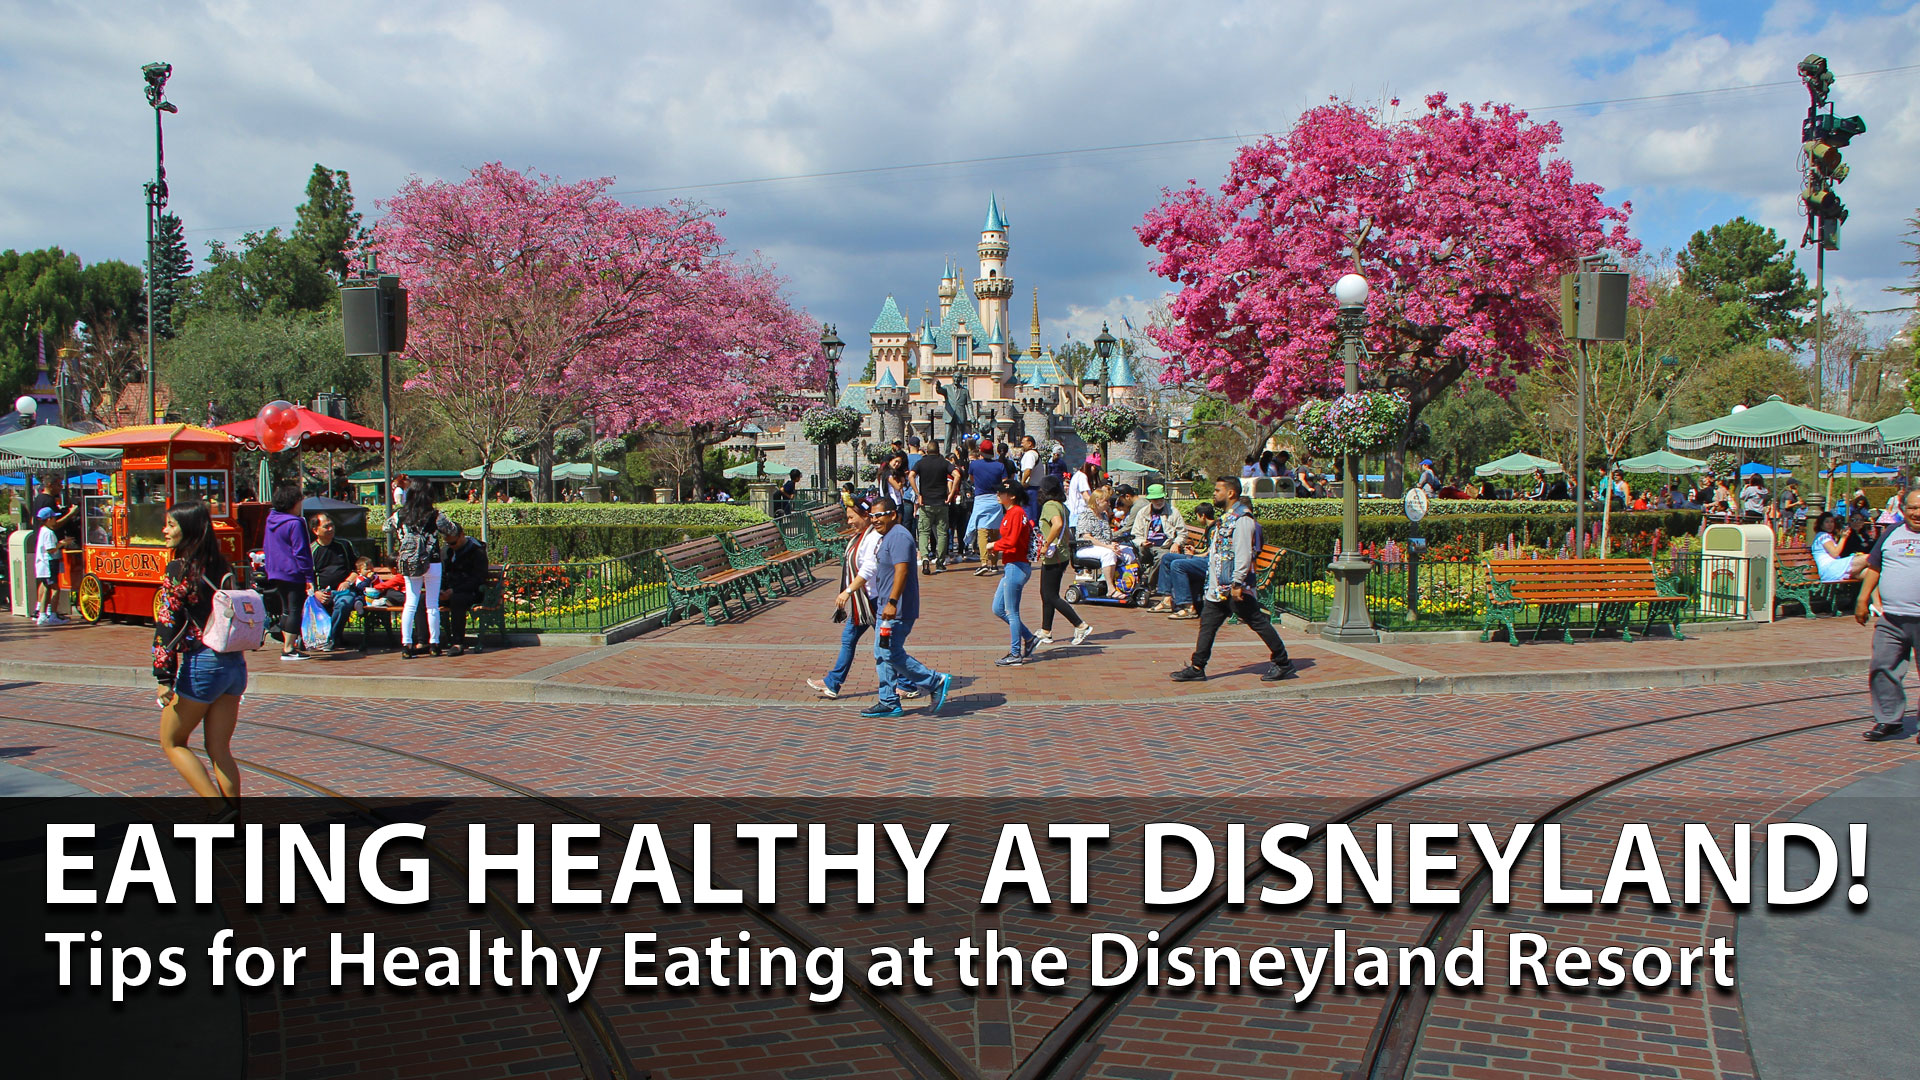 Tips for Eating Healthy at the Disneyland Resort